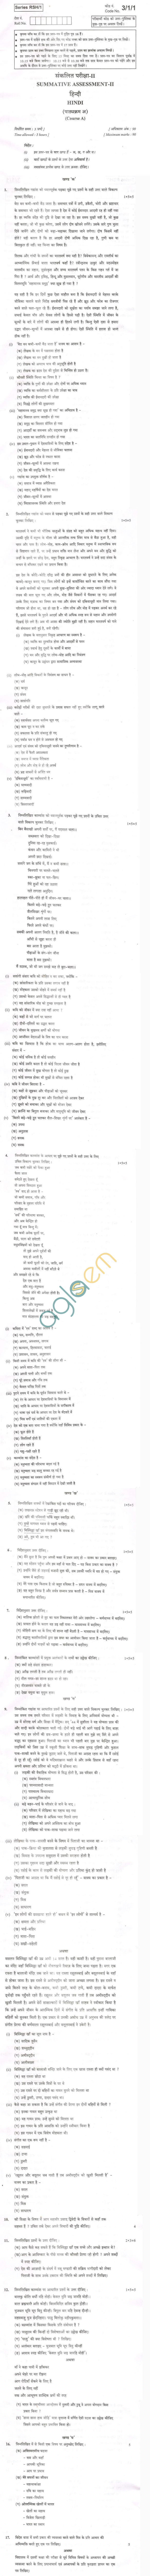 CBSE Board Exam 2013 Class X Question Paper - Hindi(Course A)